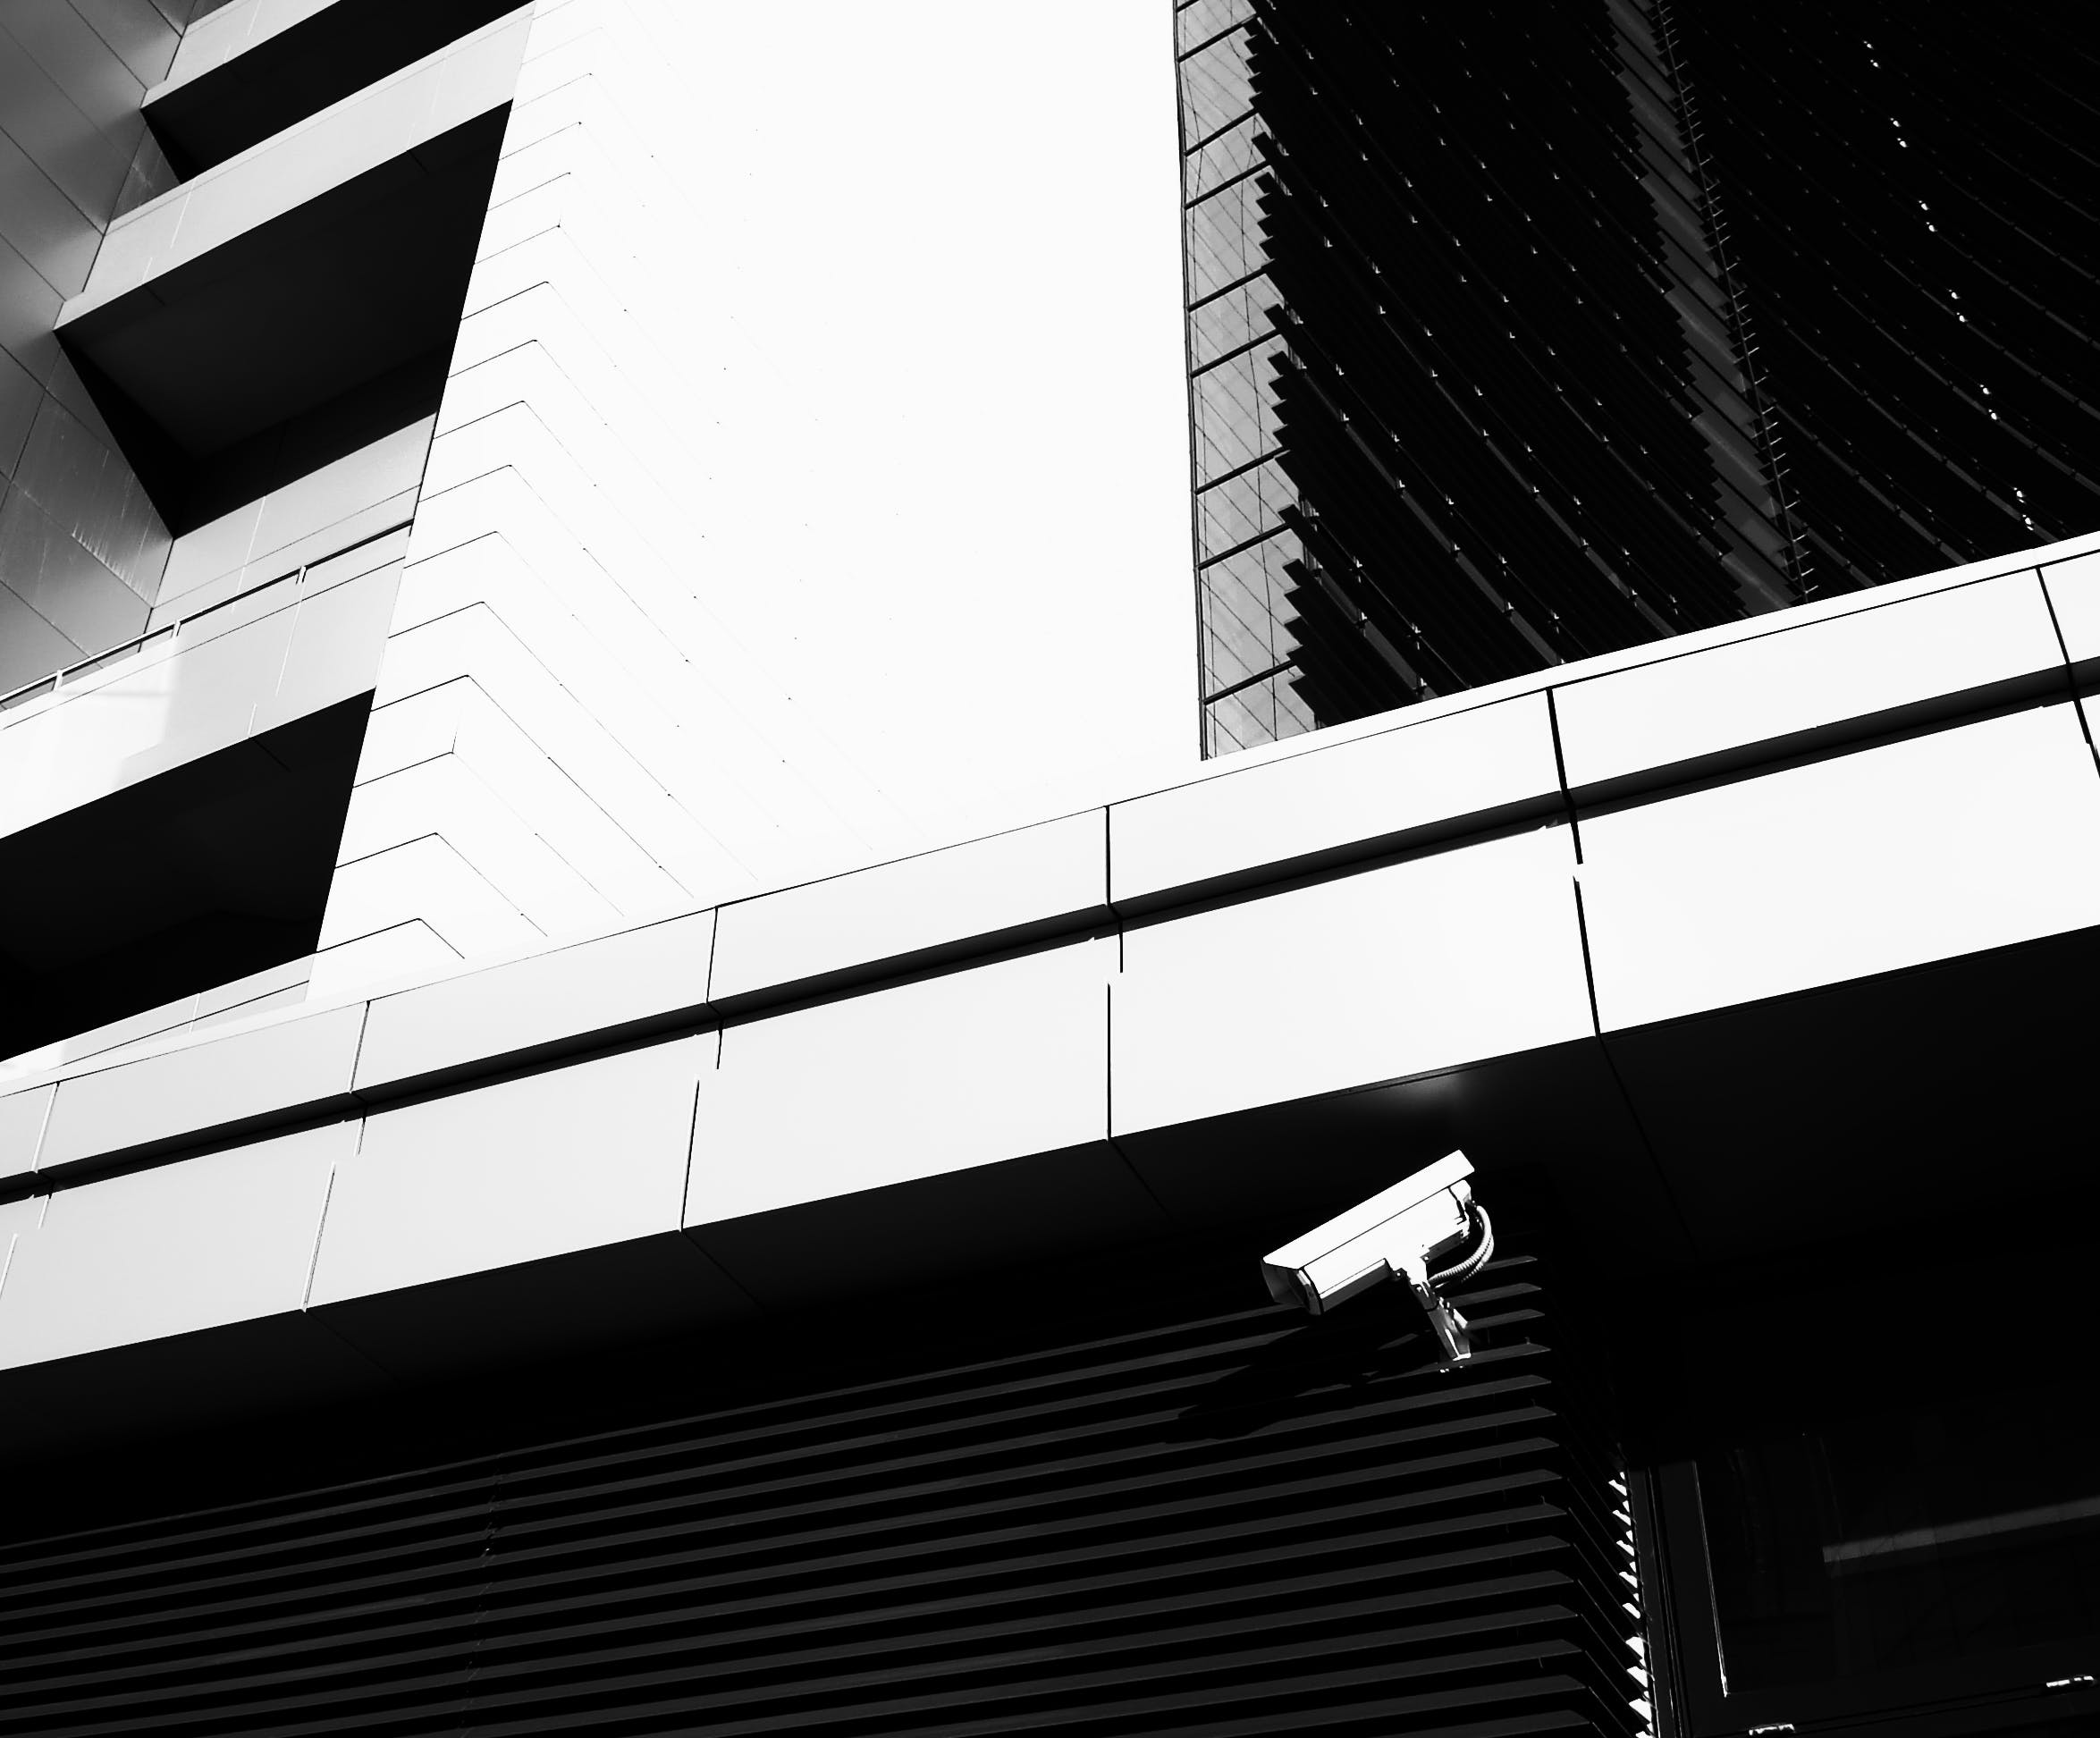 black-and-white, building, camera